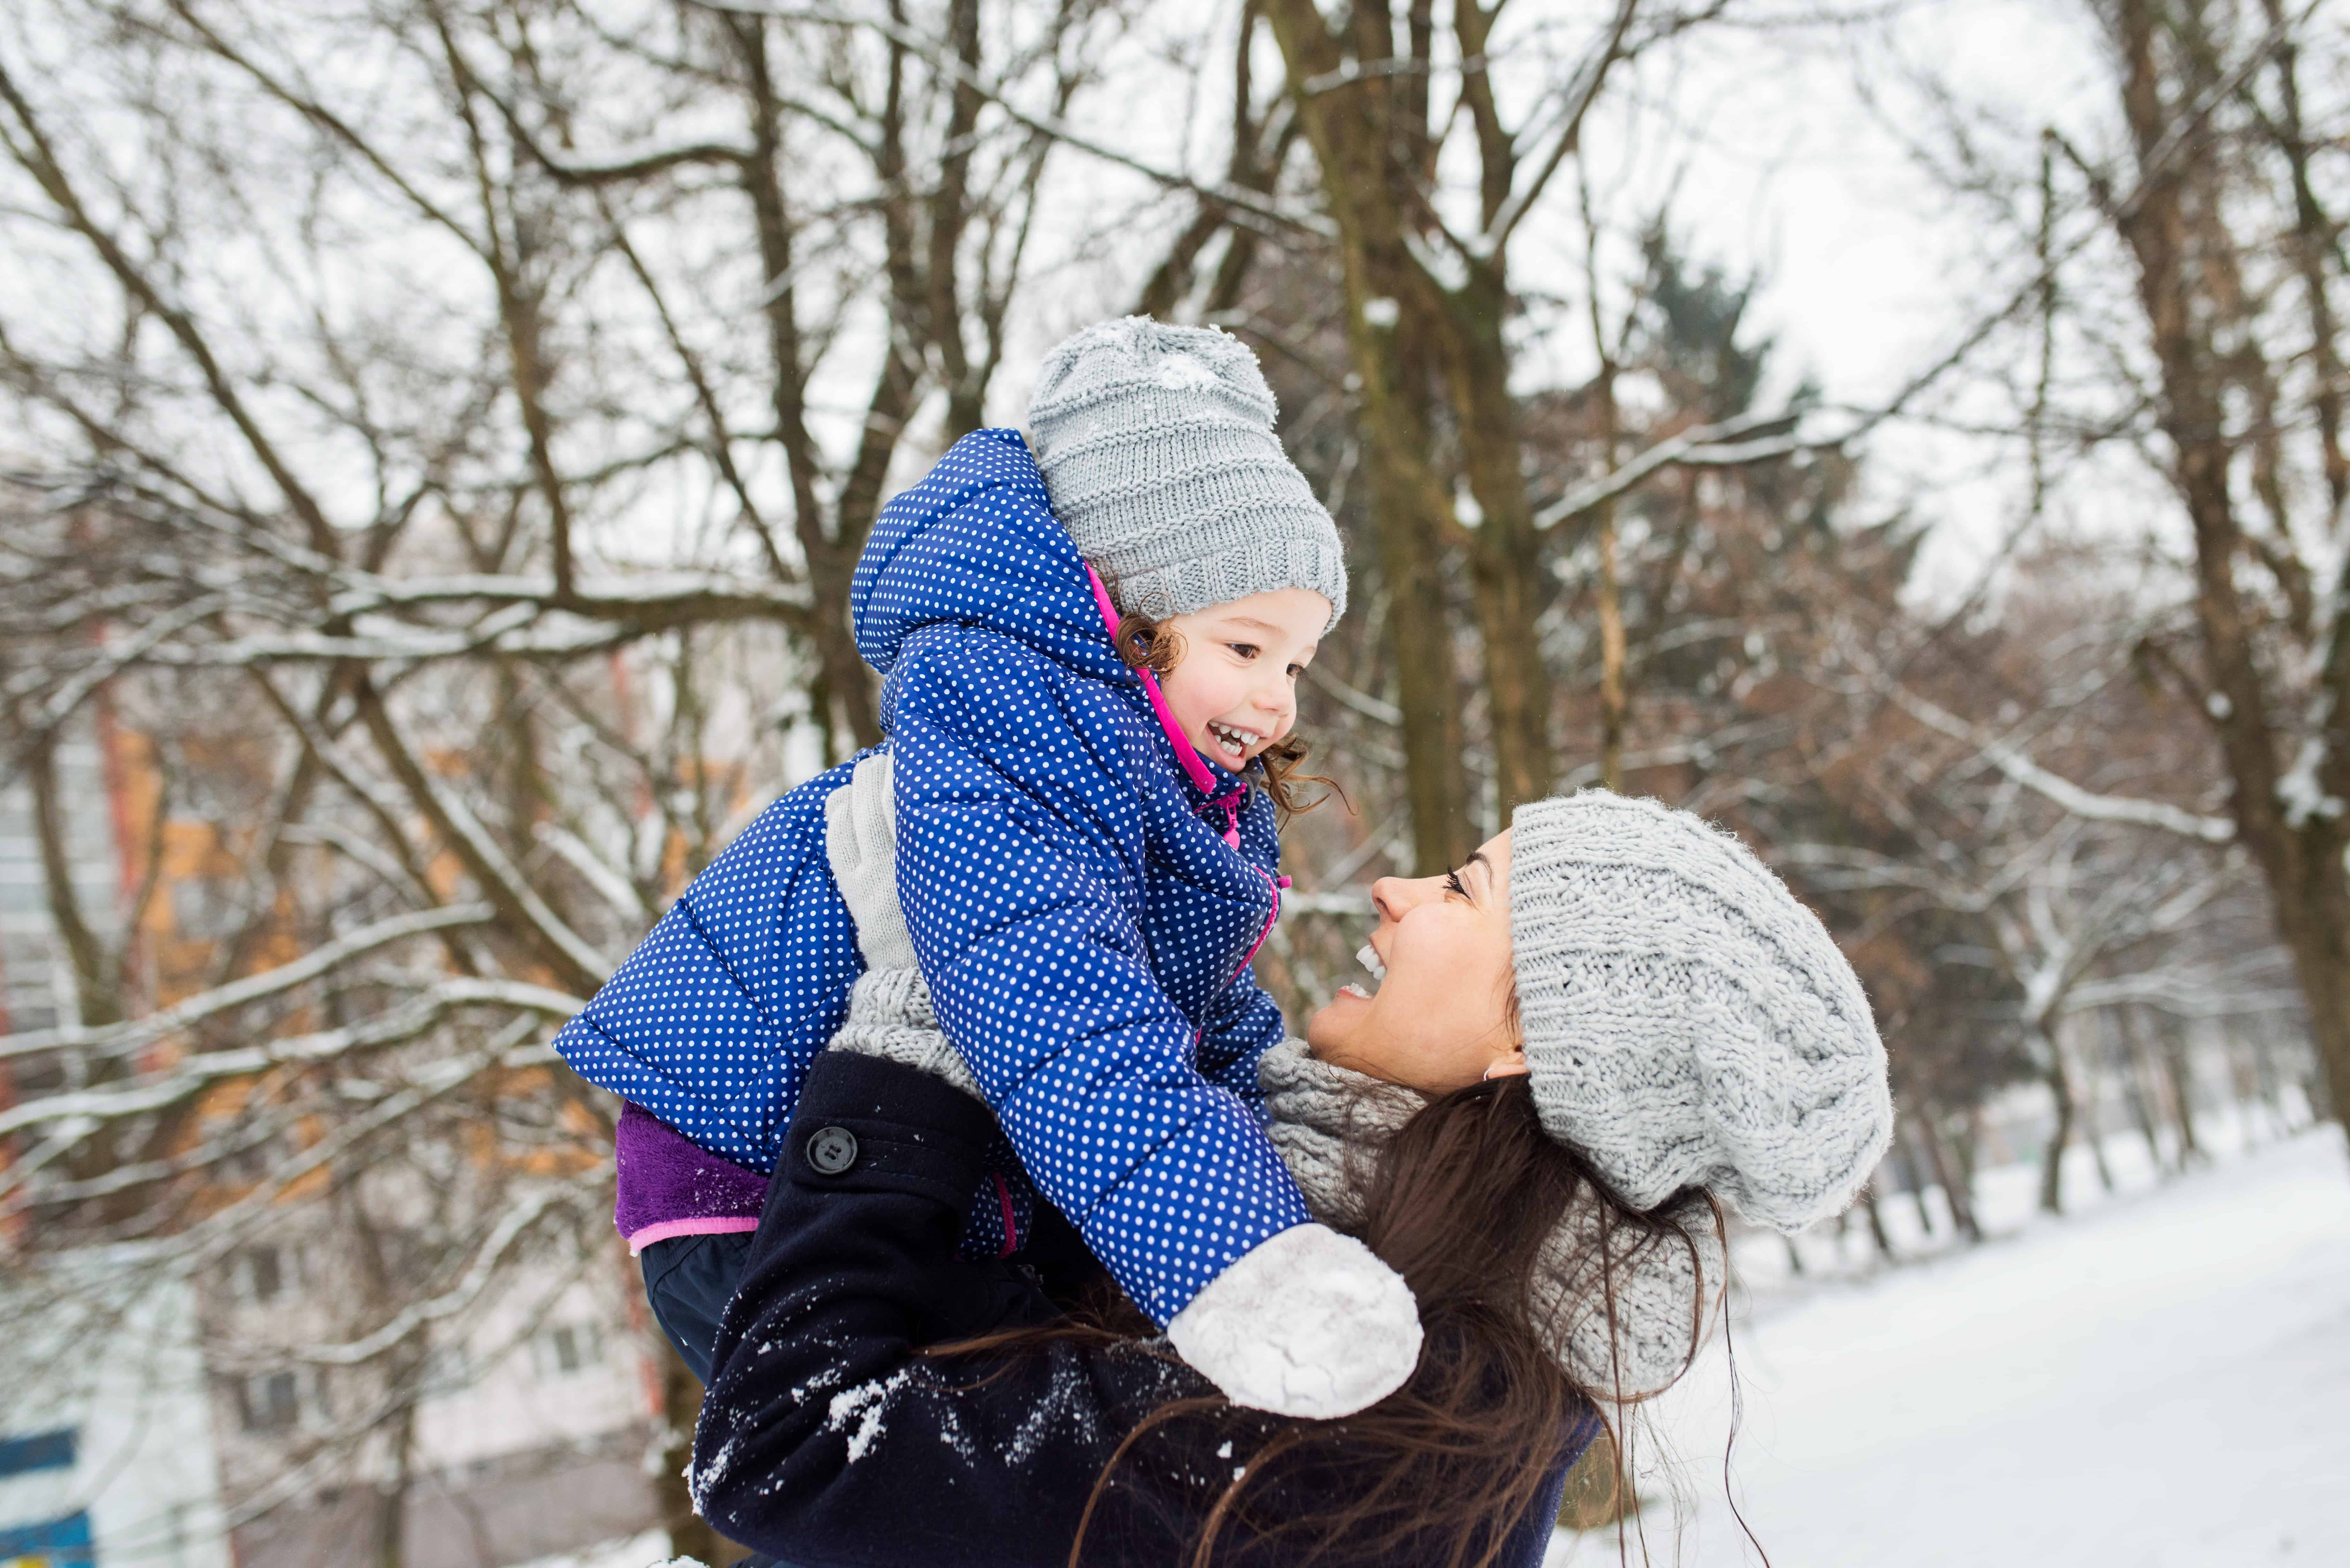 4 Fun Ways Moms Can Embrace Their Inner Child